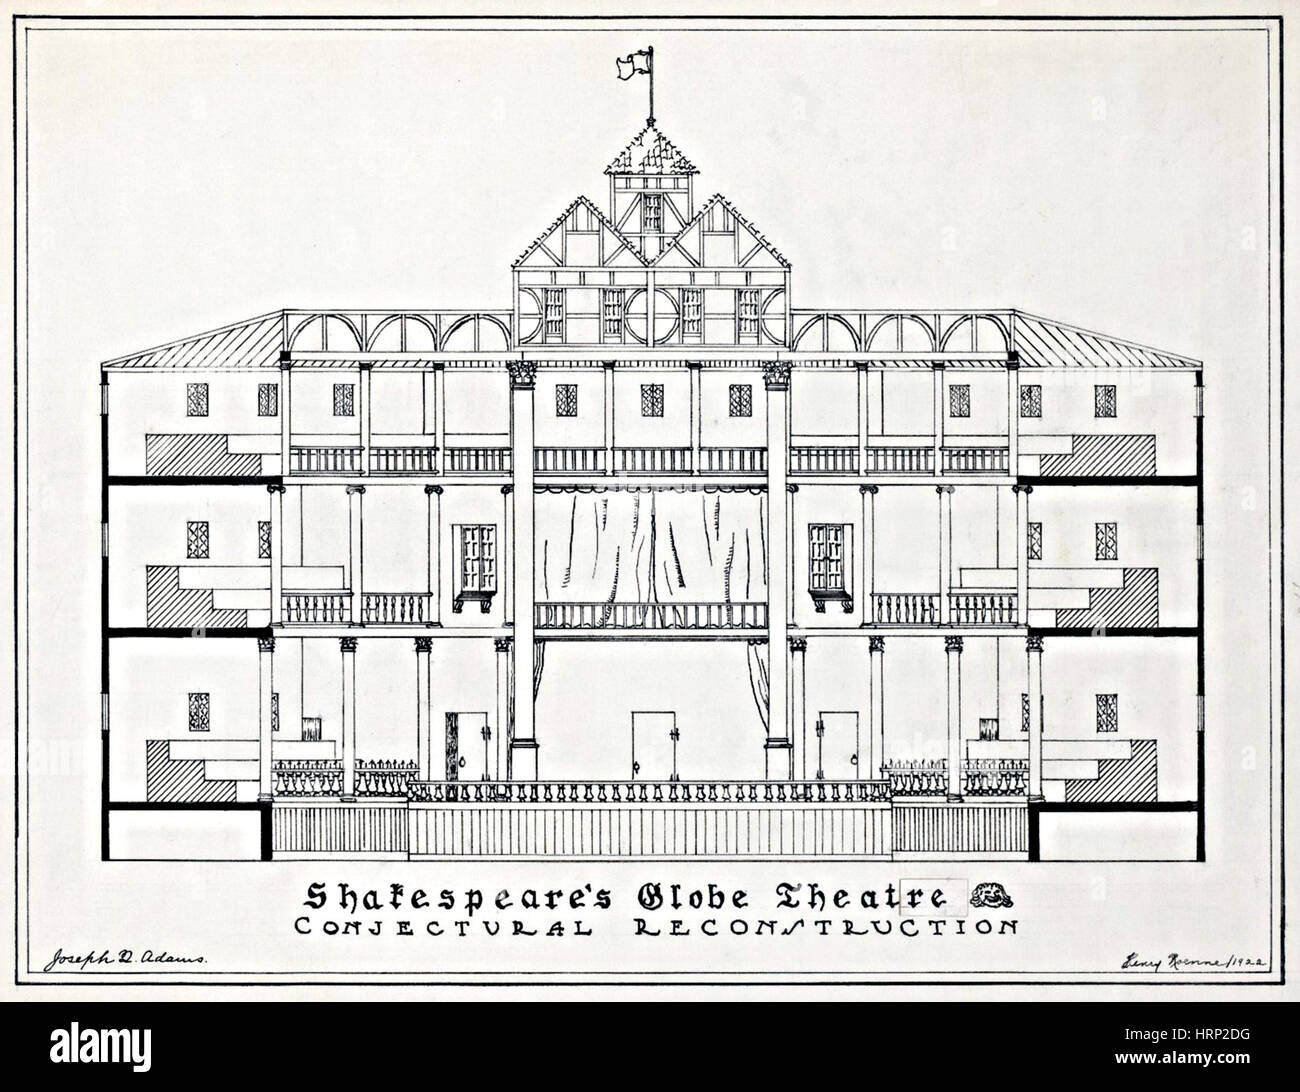 shakespeares globe theatre reconstruction HRP2DG shakespeare's globe theatre, reconstruction stock photo 135094556